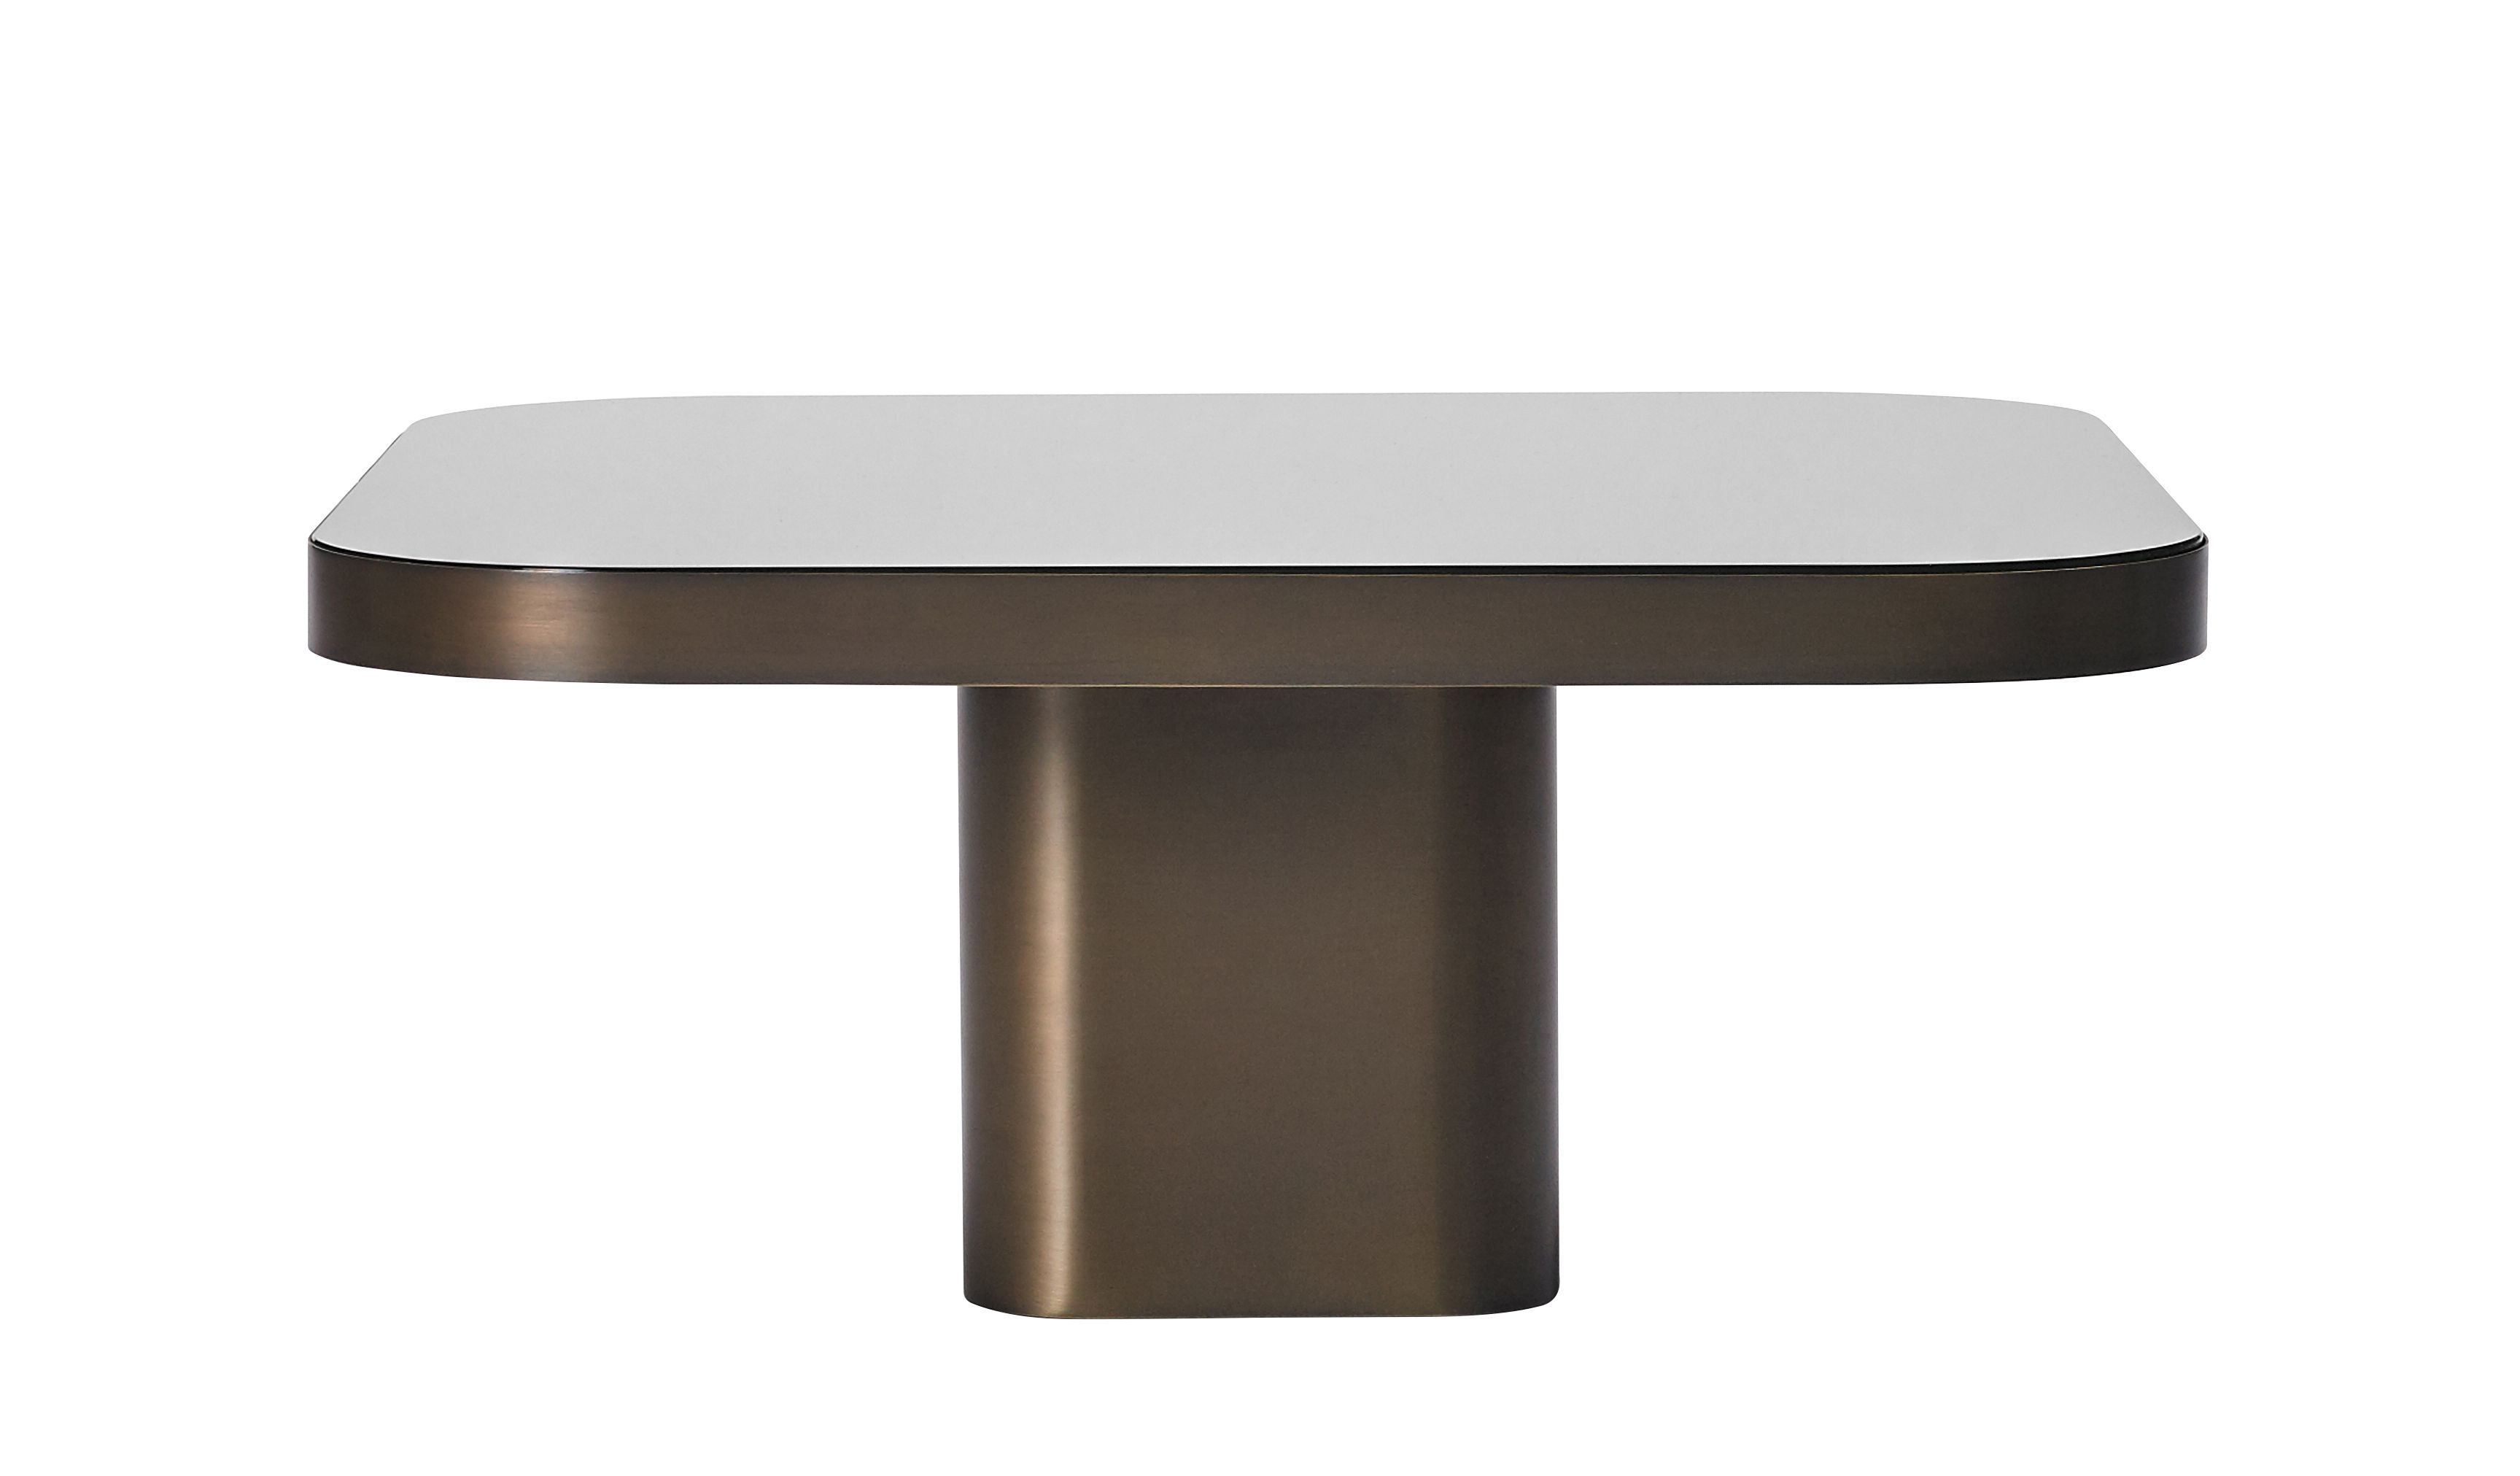 Furniture - Coffee Tables - Bow n°3 Coffee table - / 70 x 70 cm by ClassiCon - Burnished brass / Black tray - Brass, Glass